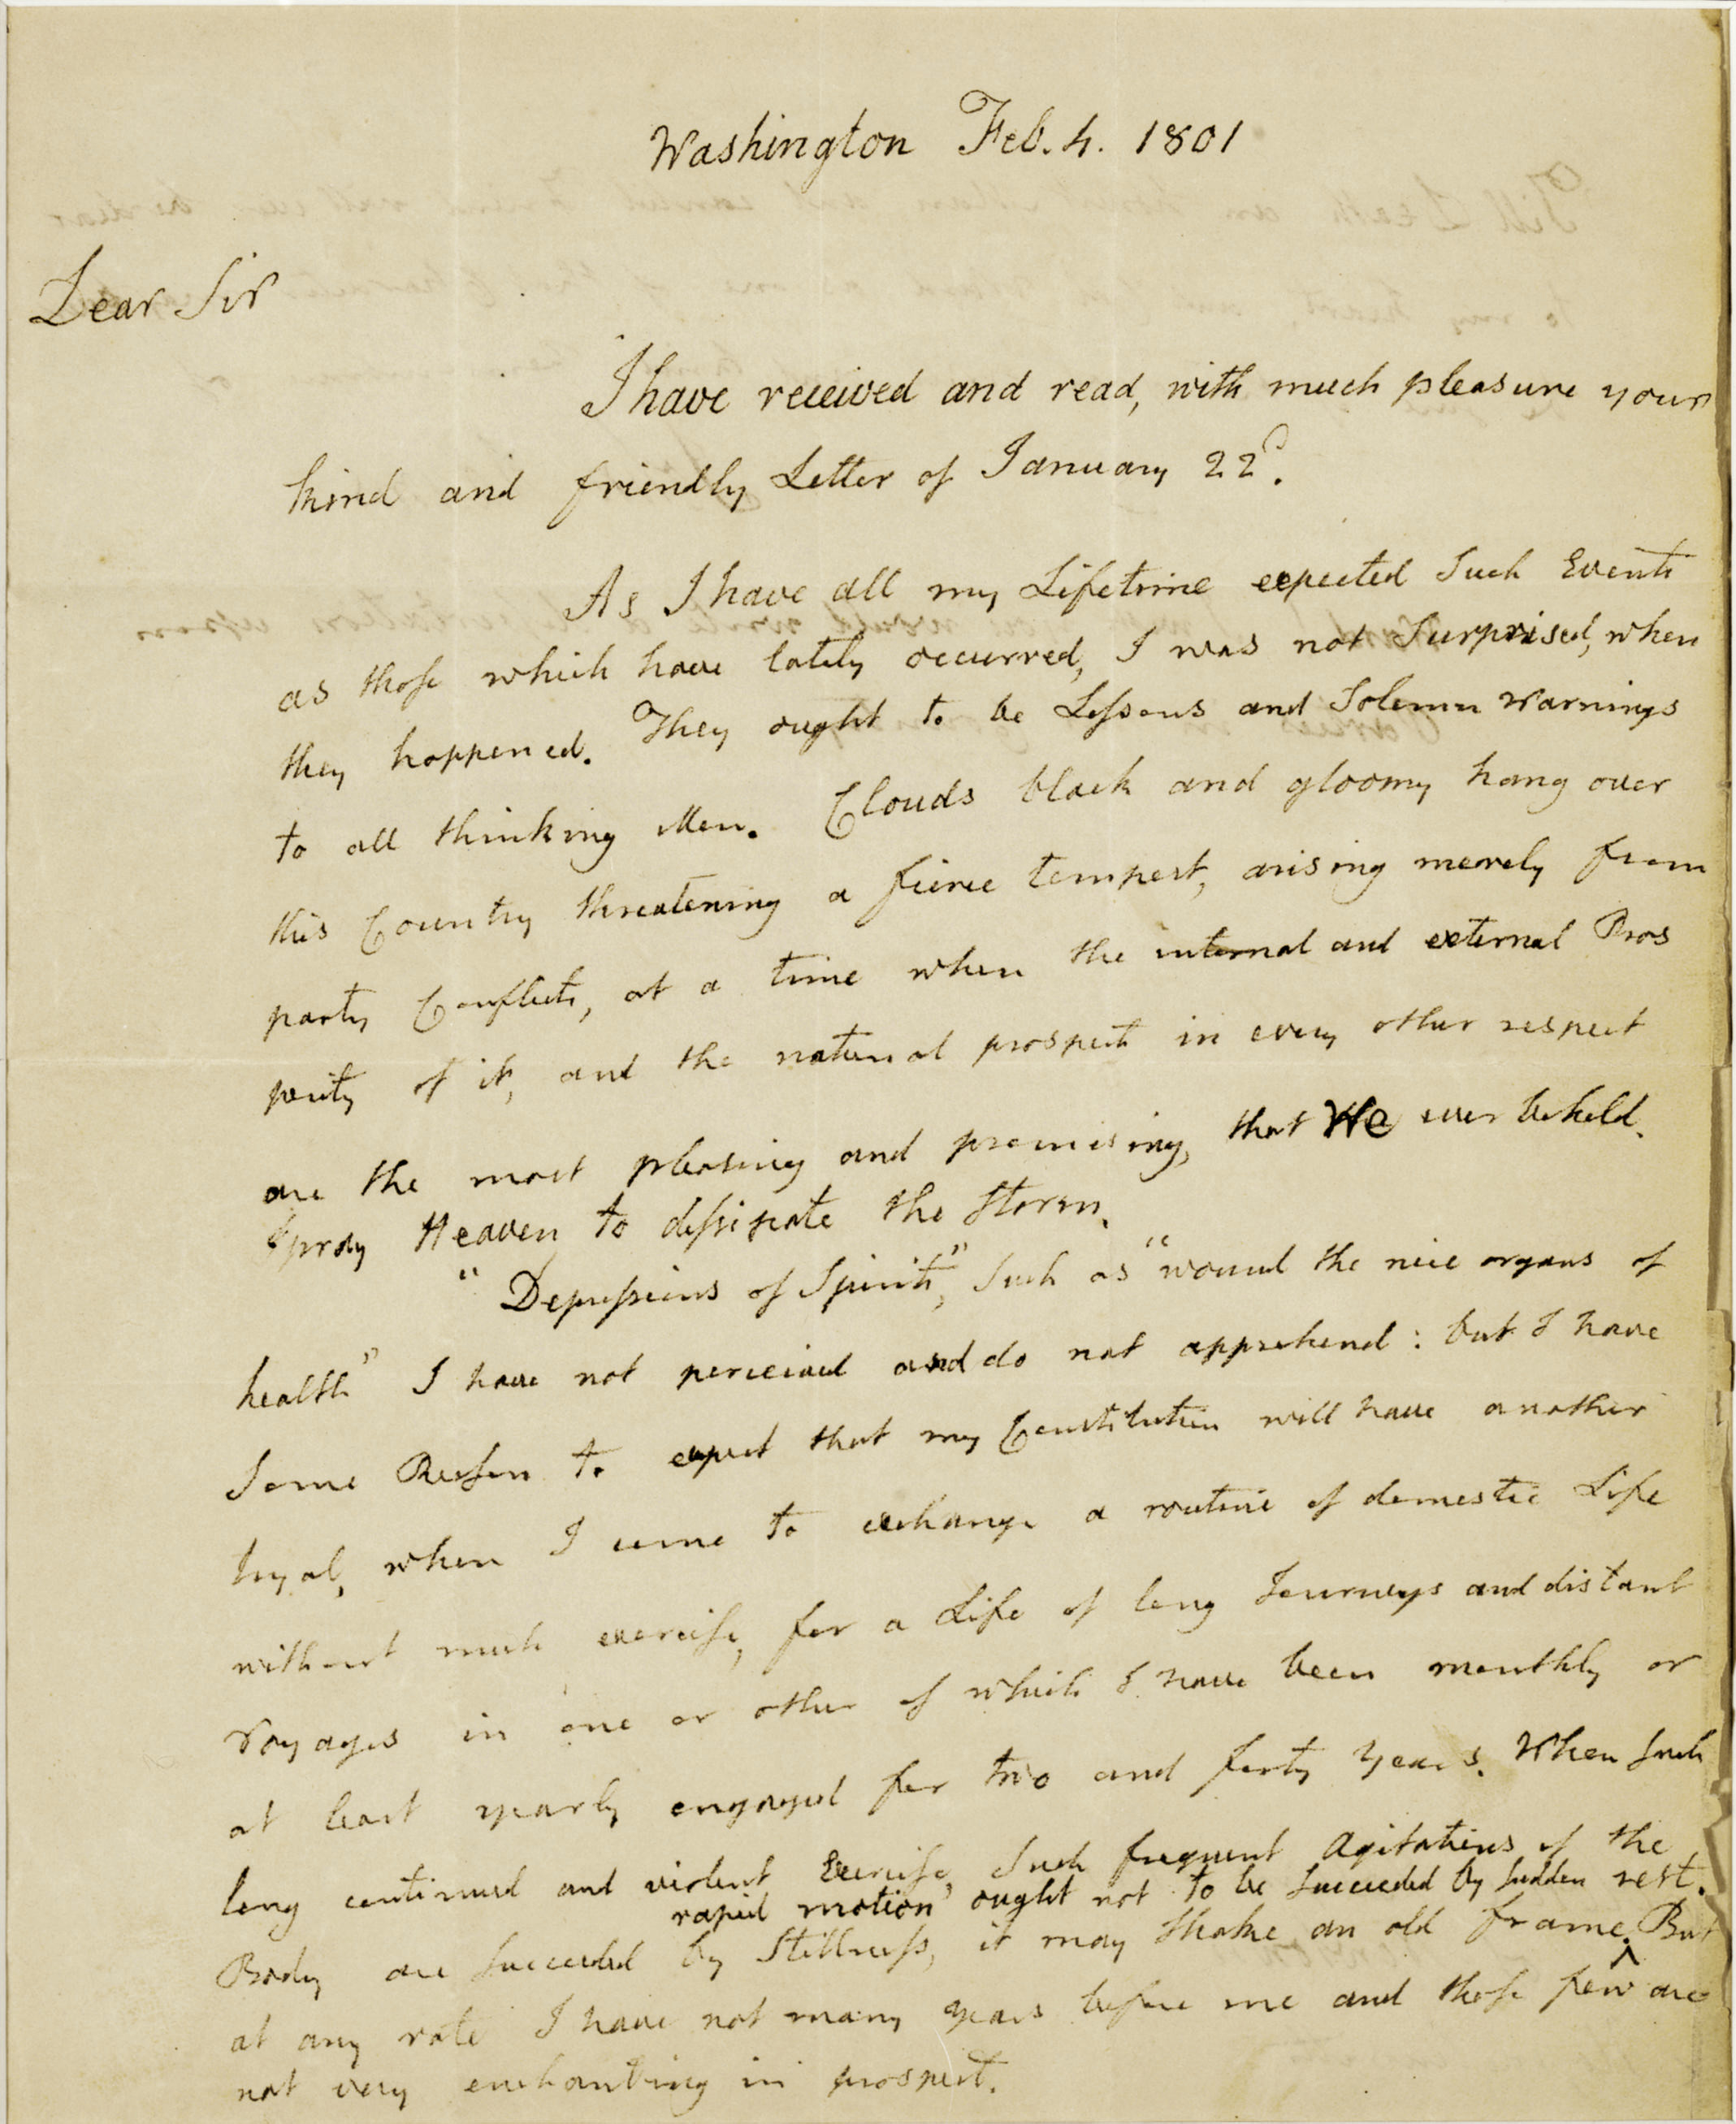 """ADAMS, John (1735-1826), President. Autograph letter signed (""""John Adams""""), AS PRESIDENT, to Col. Joseph Ward (1737-1812), Washington, D.C. 4 February 1801. 2 pages, 4to, slight chipping at lower right edge, grazing several words, very light toning at extreme margins. Matted and framed."""